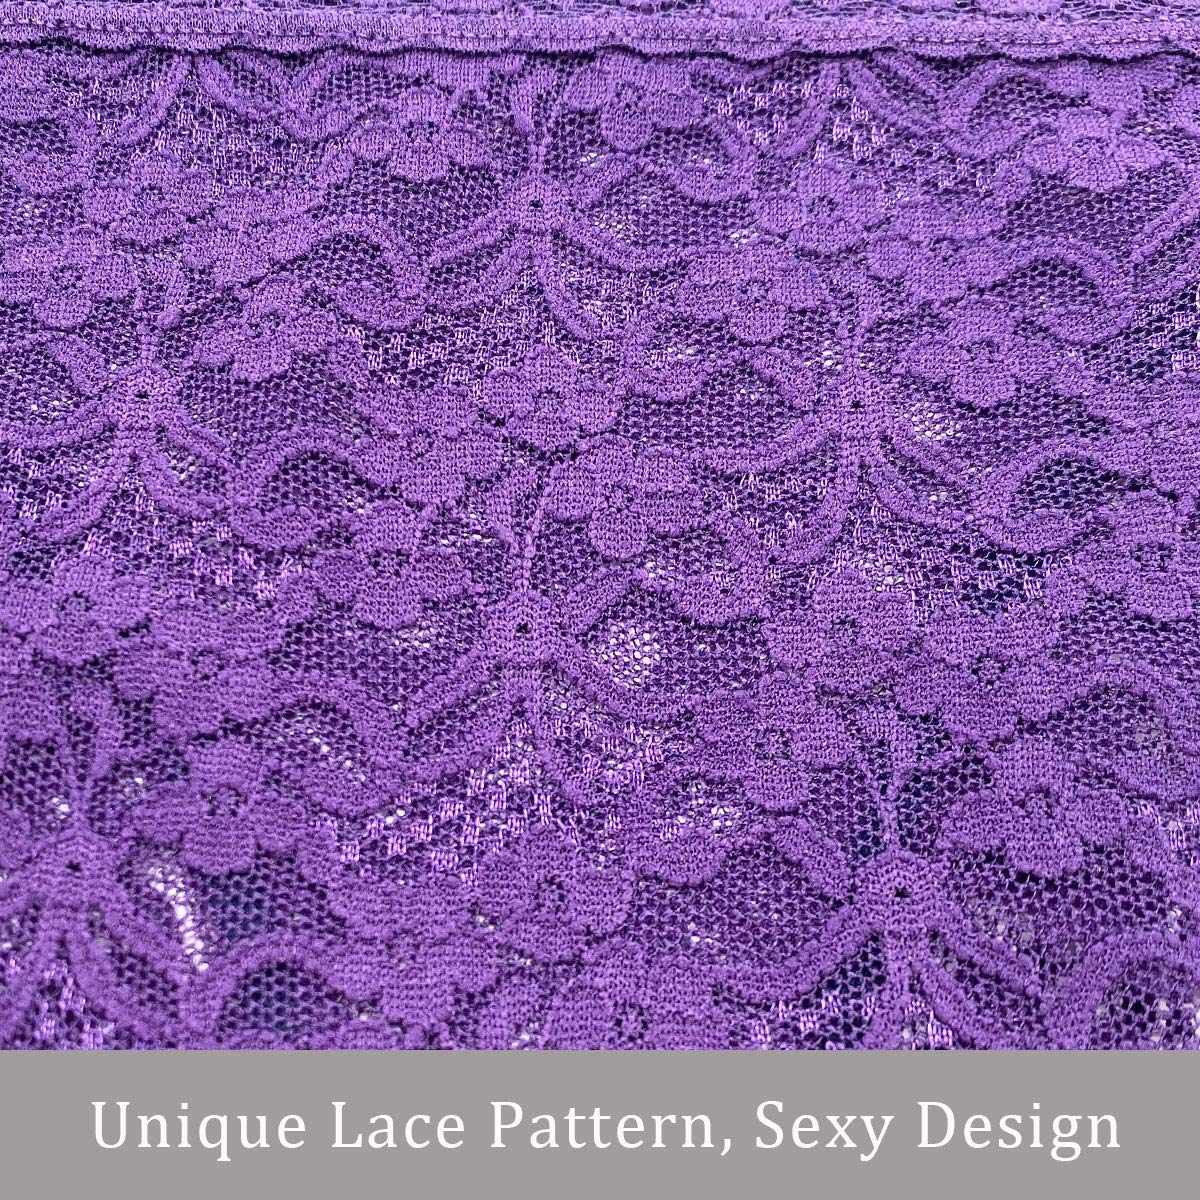 Assorted 8 Different Lace Pattern Colors Pmrxi Pack of 8 Women Lace Bikini Panties